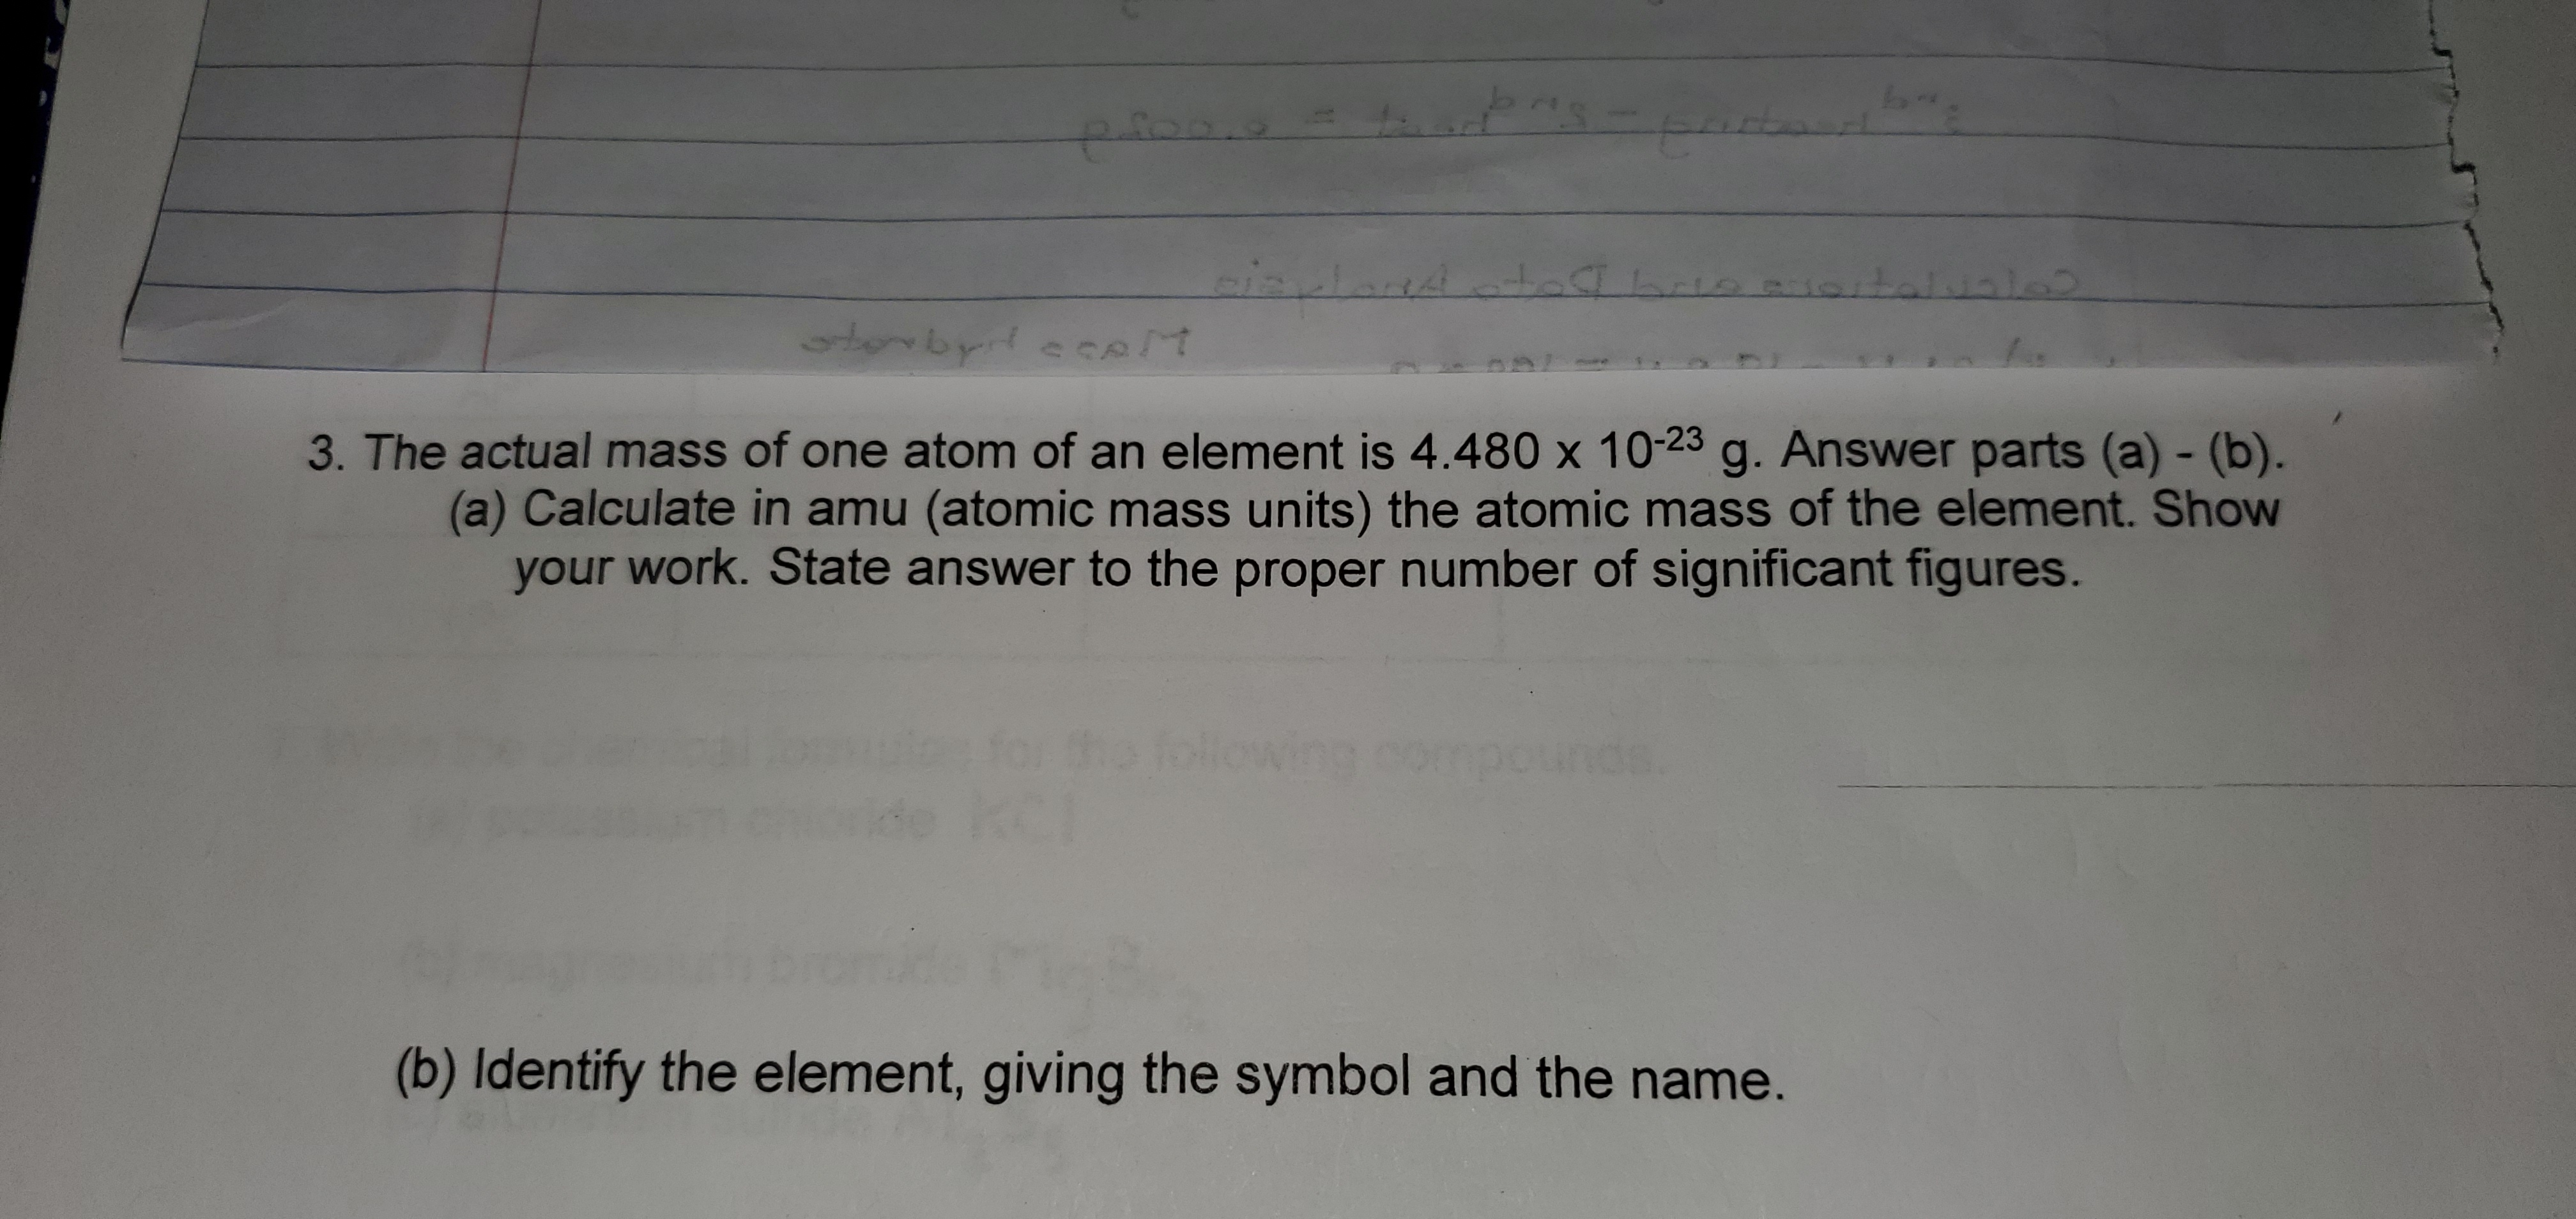 s 9497644 00e lt Cf 3. The actual mass of one atom of an element is 4.480 x 10-23 g. An swer parts (a) - (b). (a) Calculate in amu (atomic mass units) the atomic mass of the element. Show your work. State answer to the proper number of significant figures. (b) Identify the element, giving the symbol and the name.